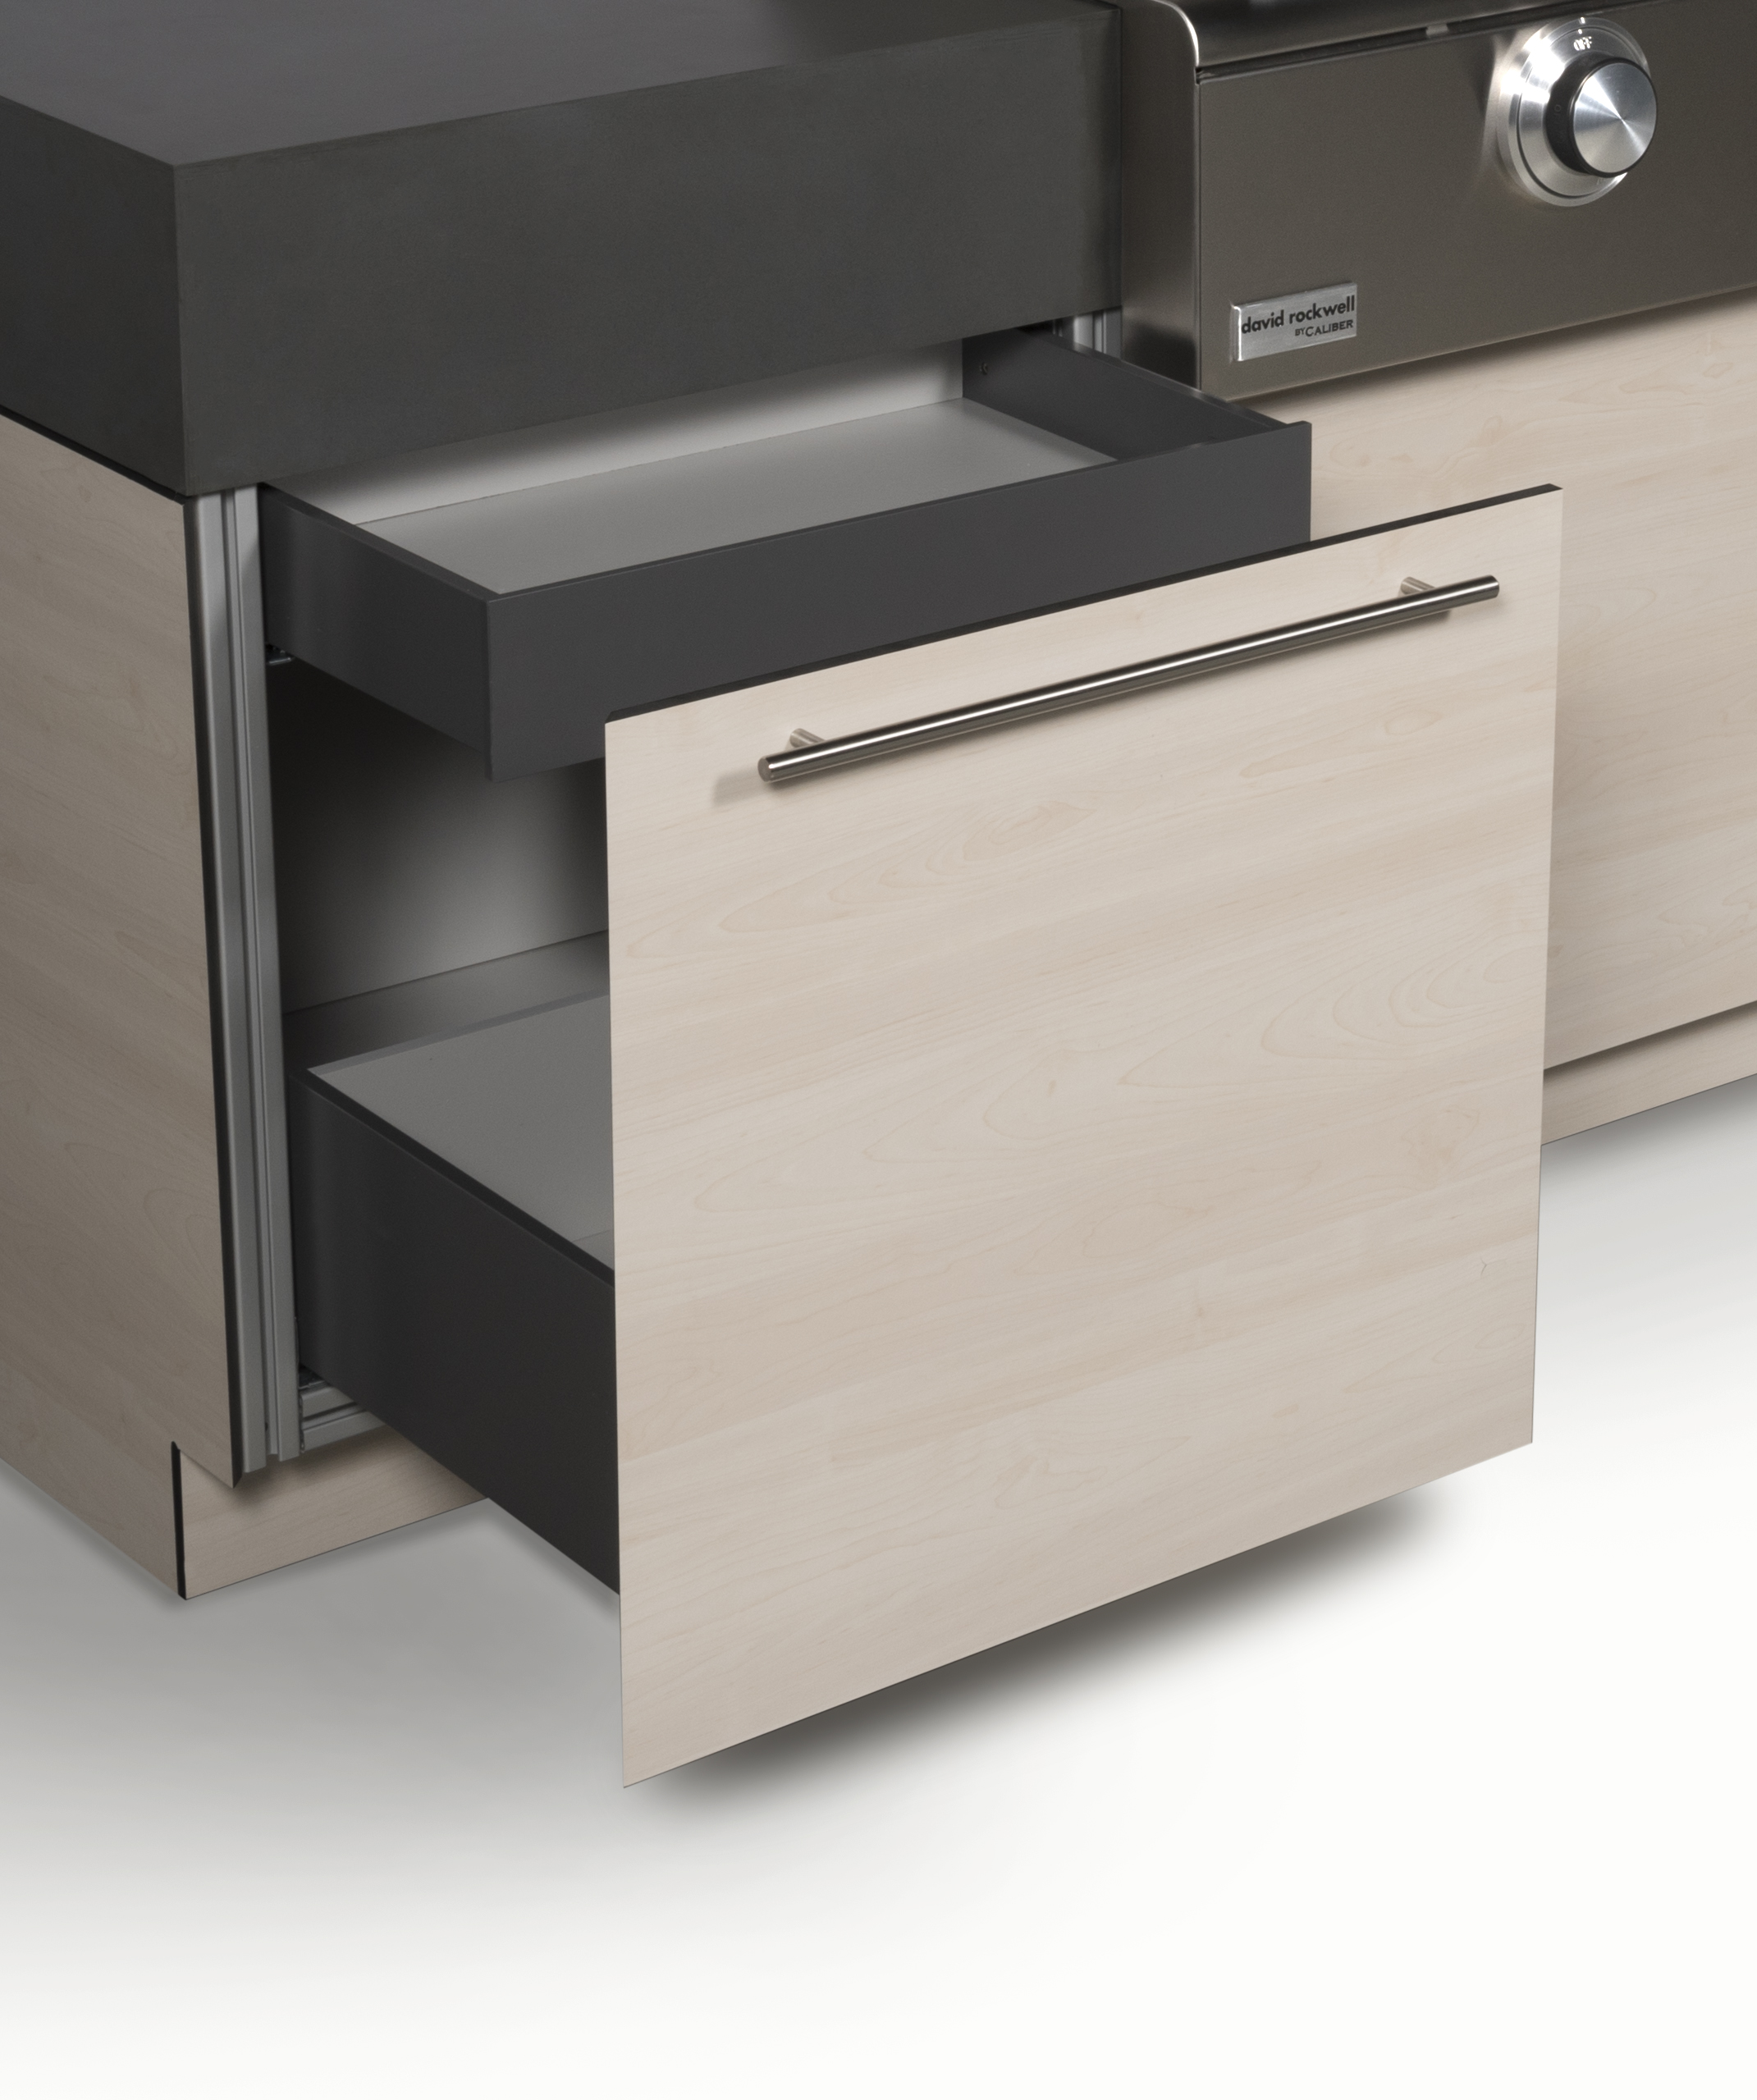 Single Bin Drawer + Inset